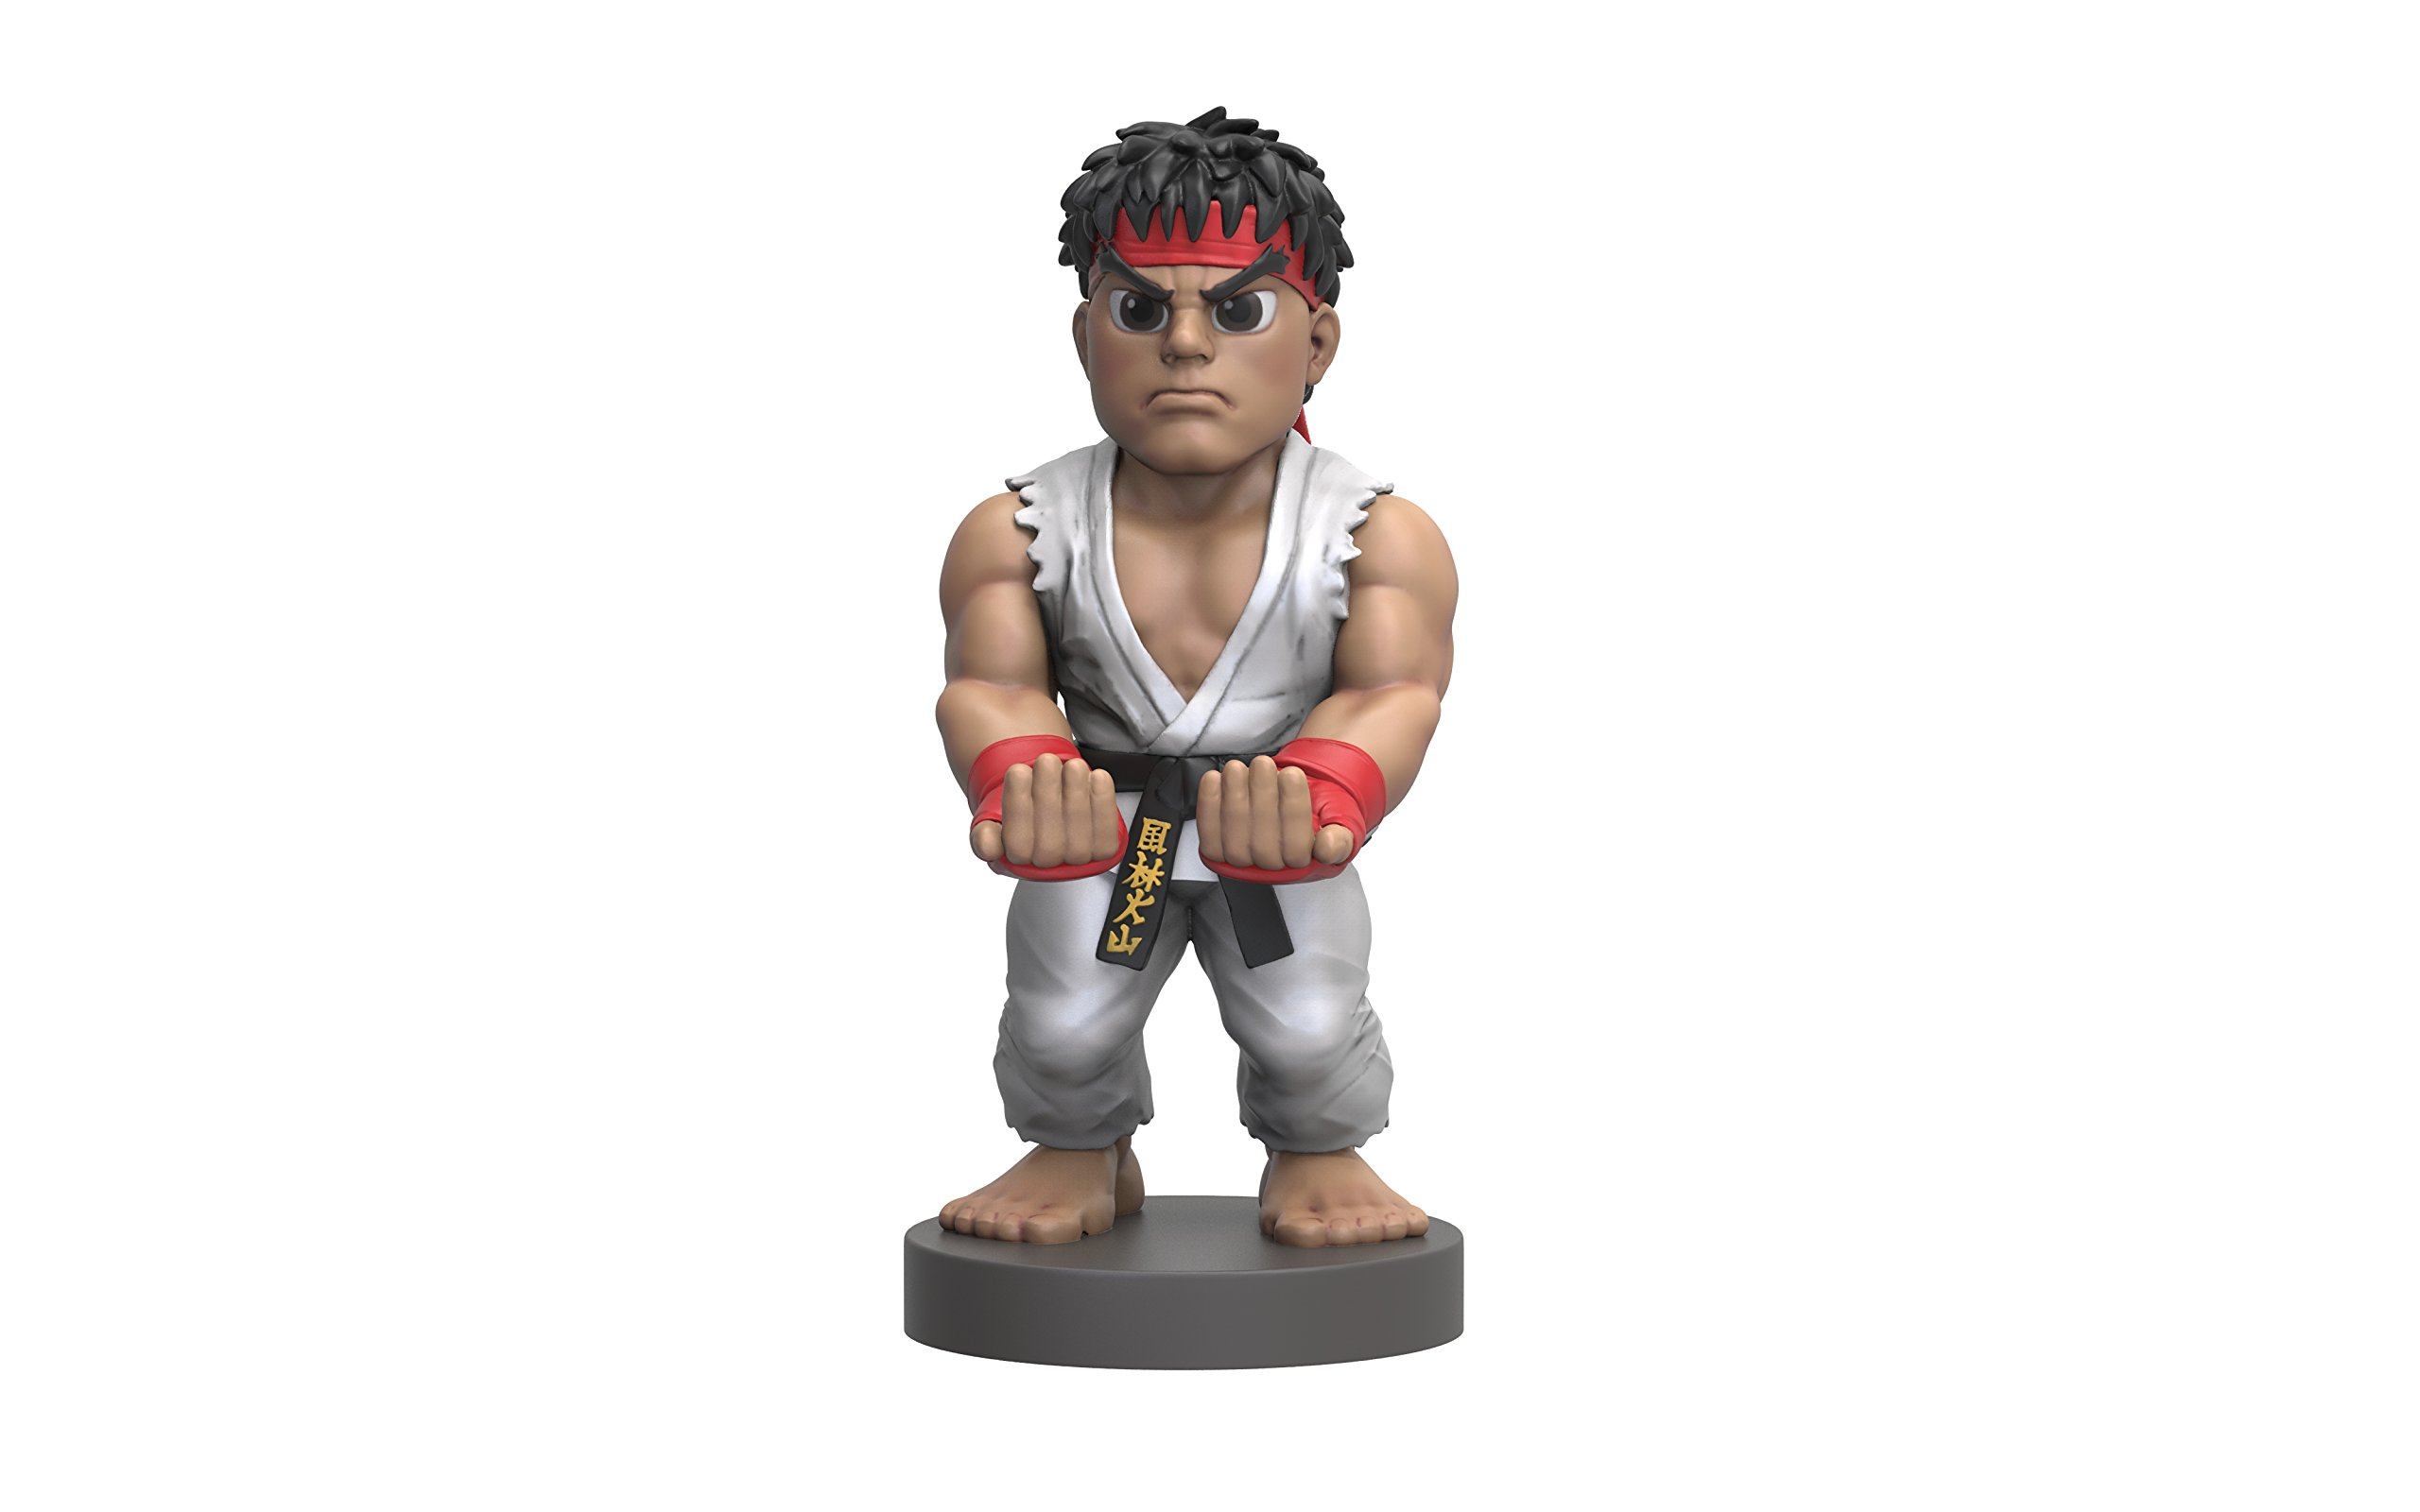 Collectible Street Fighter V Cable Guy Device Holder - works with PlayStation and Xbox controllers and all Smartphones -  Ryu - Not Machine Specific by Exquisite Gaming